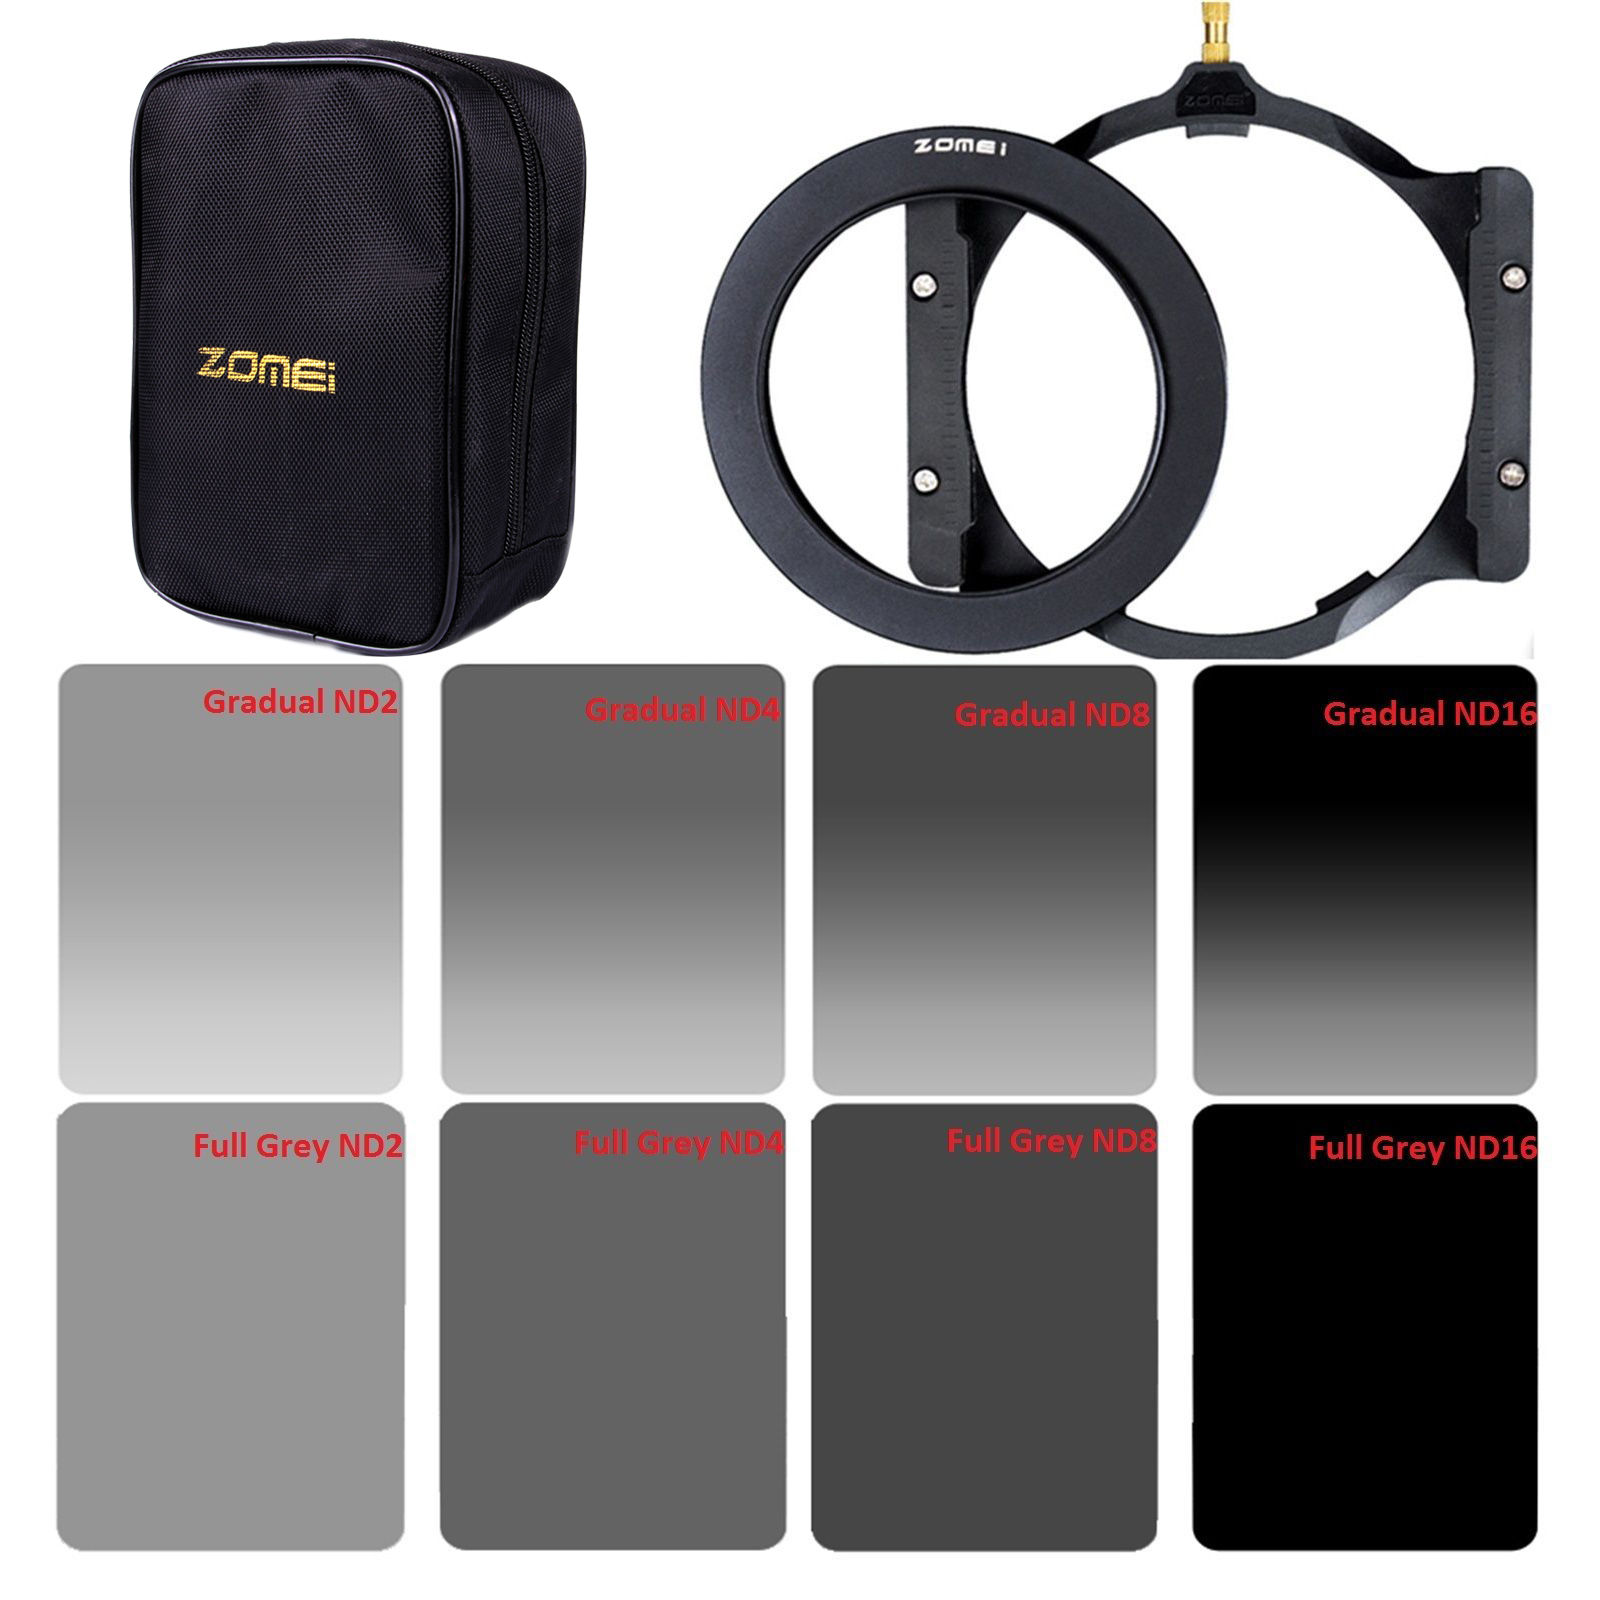 Zomei Square filter 150*100mm Complete&Graduated ND2 4 8 16 Neutral Density ND filter holder+67/72/77/82/86mm adapter graduated neutral density nd color filter set black transparent 6pcs